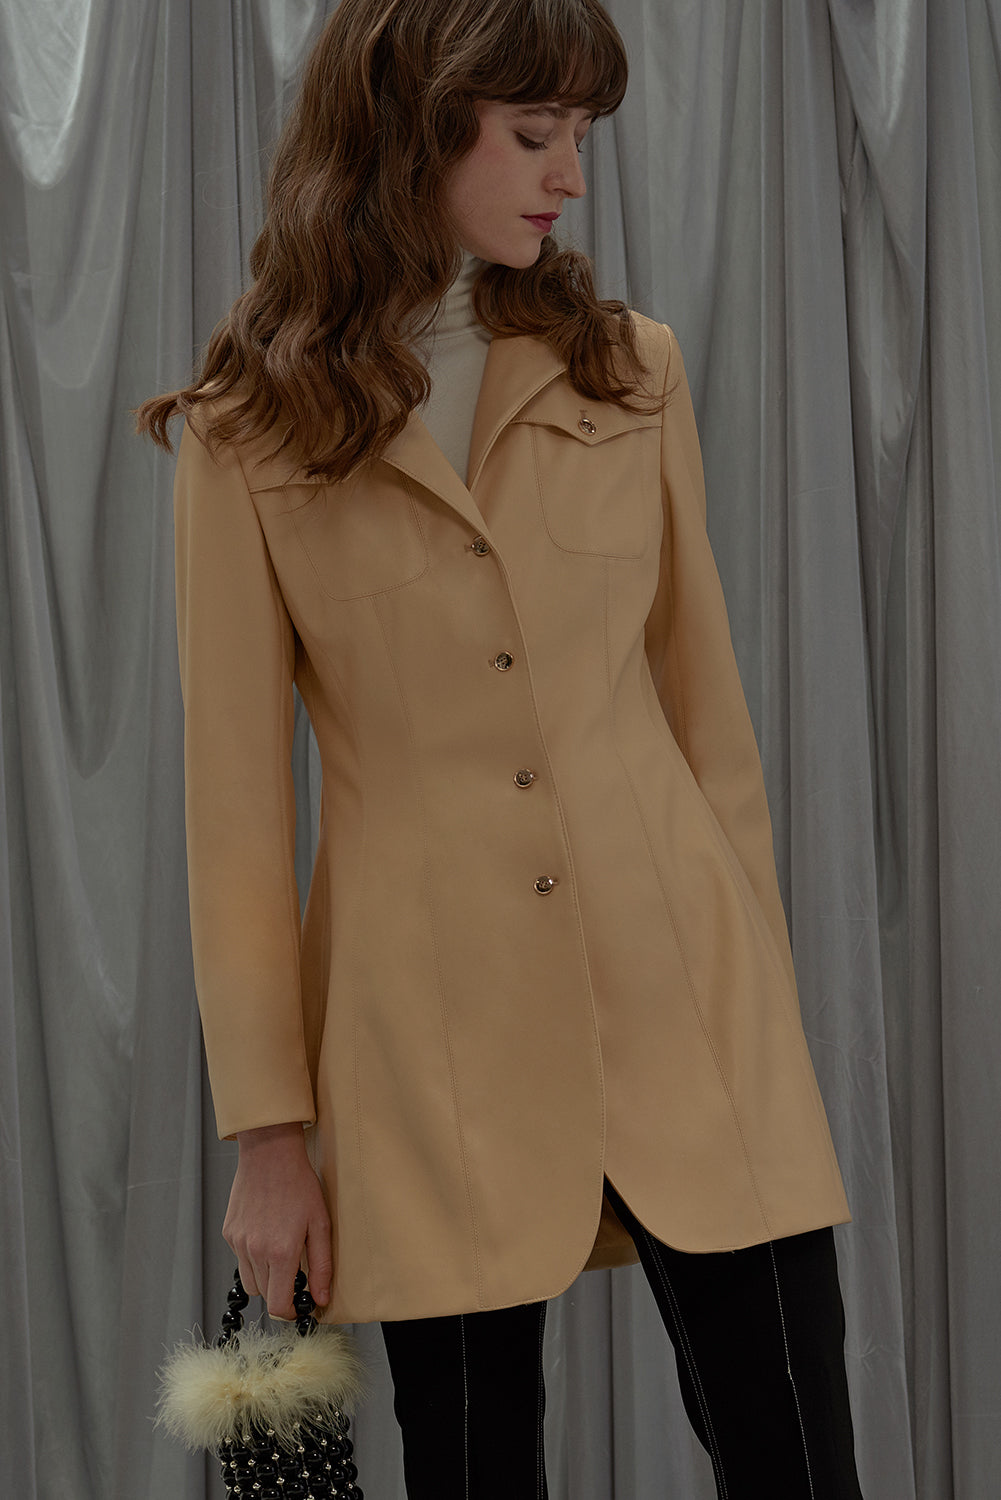 Backfired Blazer Coat-Vanilla Yellow